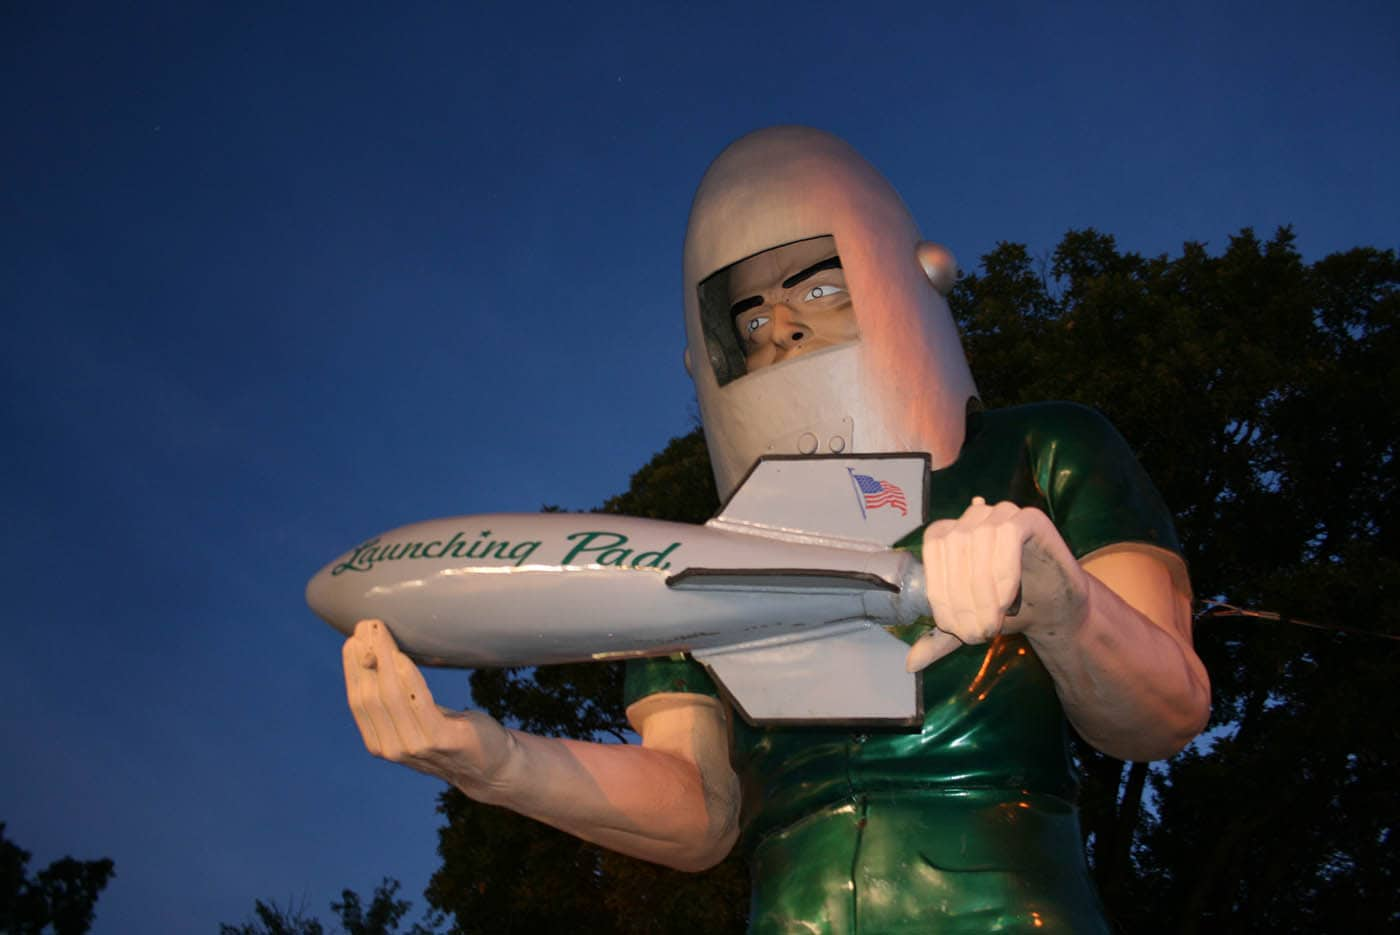 ILLINOIS ROAD TRIP AND ROADSIDE ATTRACTIONS: WILMINGTON: GEMINI GIANT - SPACE AGE MUFFLER MAN IN WILMINGTON